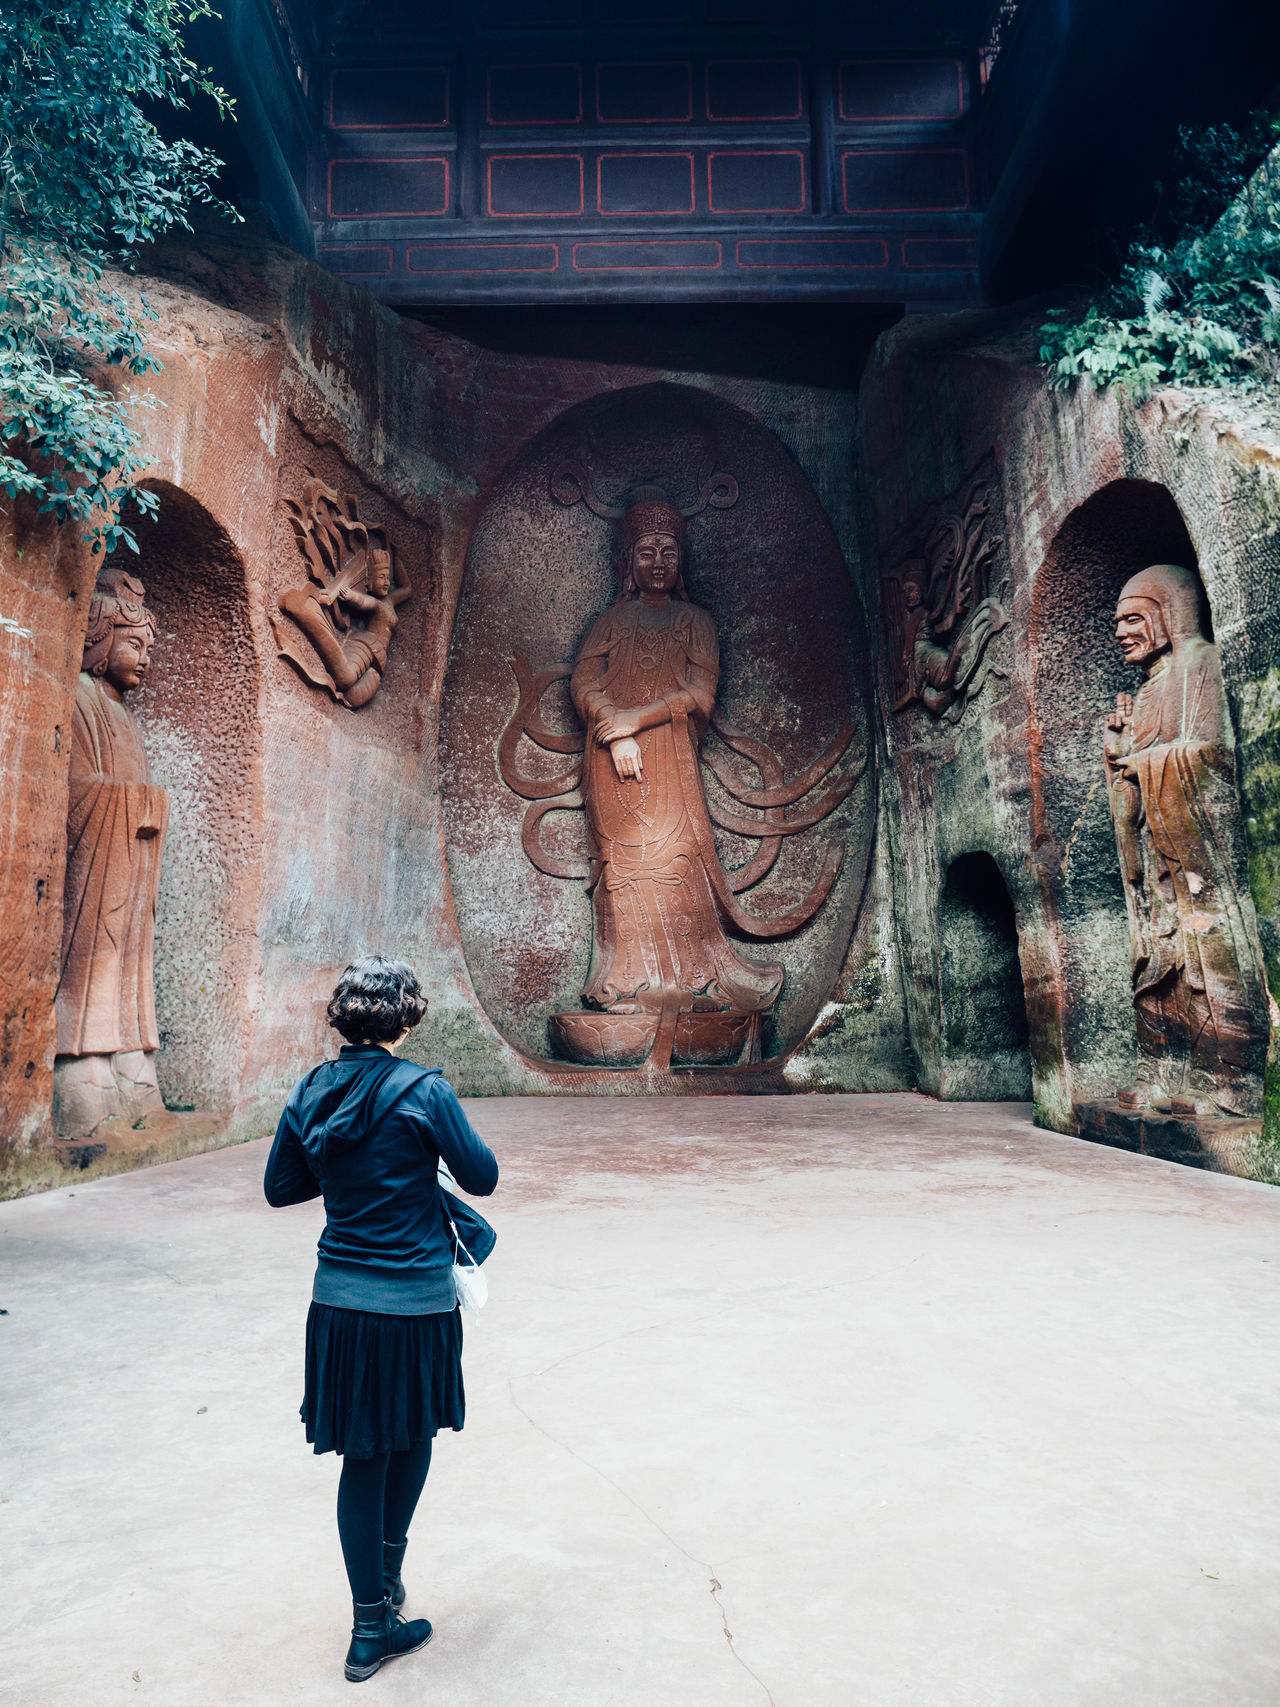 Adult Adults Only Architecture Buddha China Day Full Length Outdoors People Real People Rear View Relief Statue Tourist